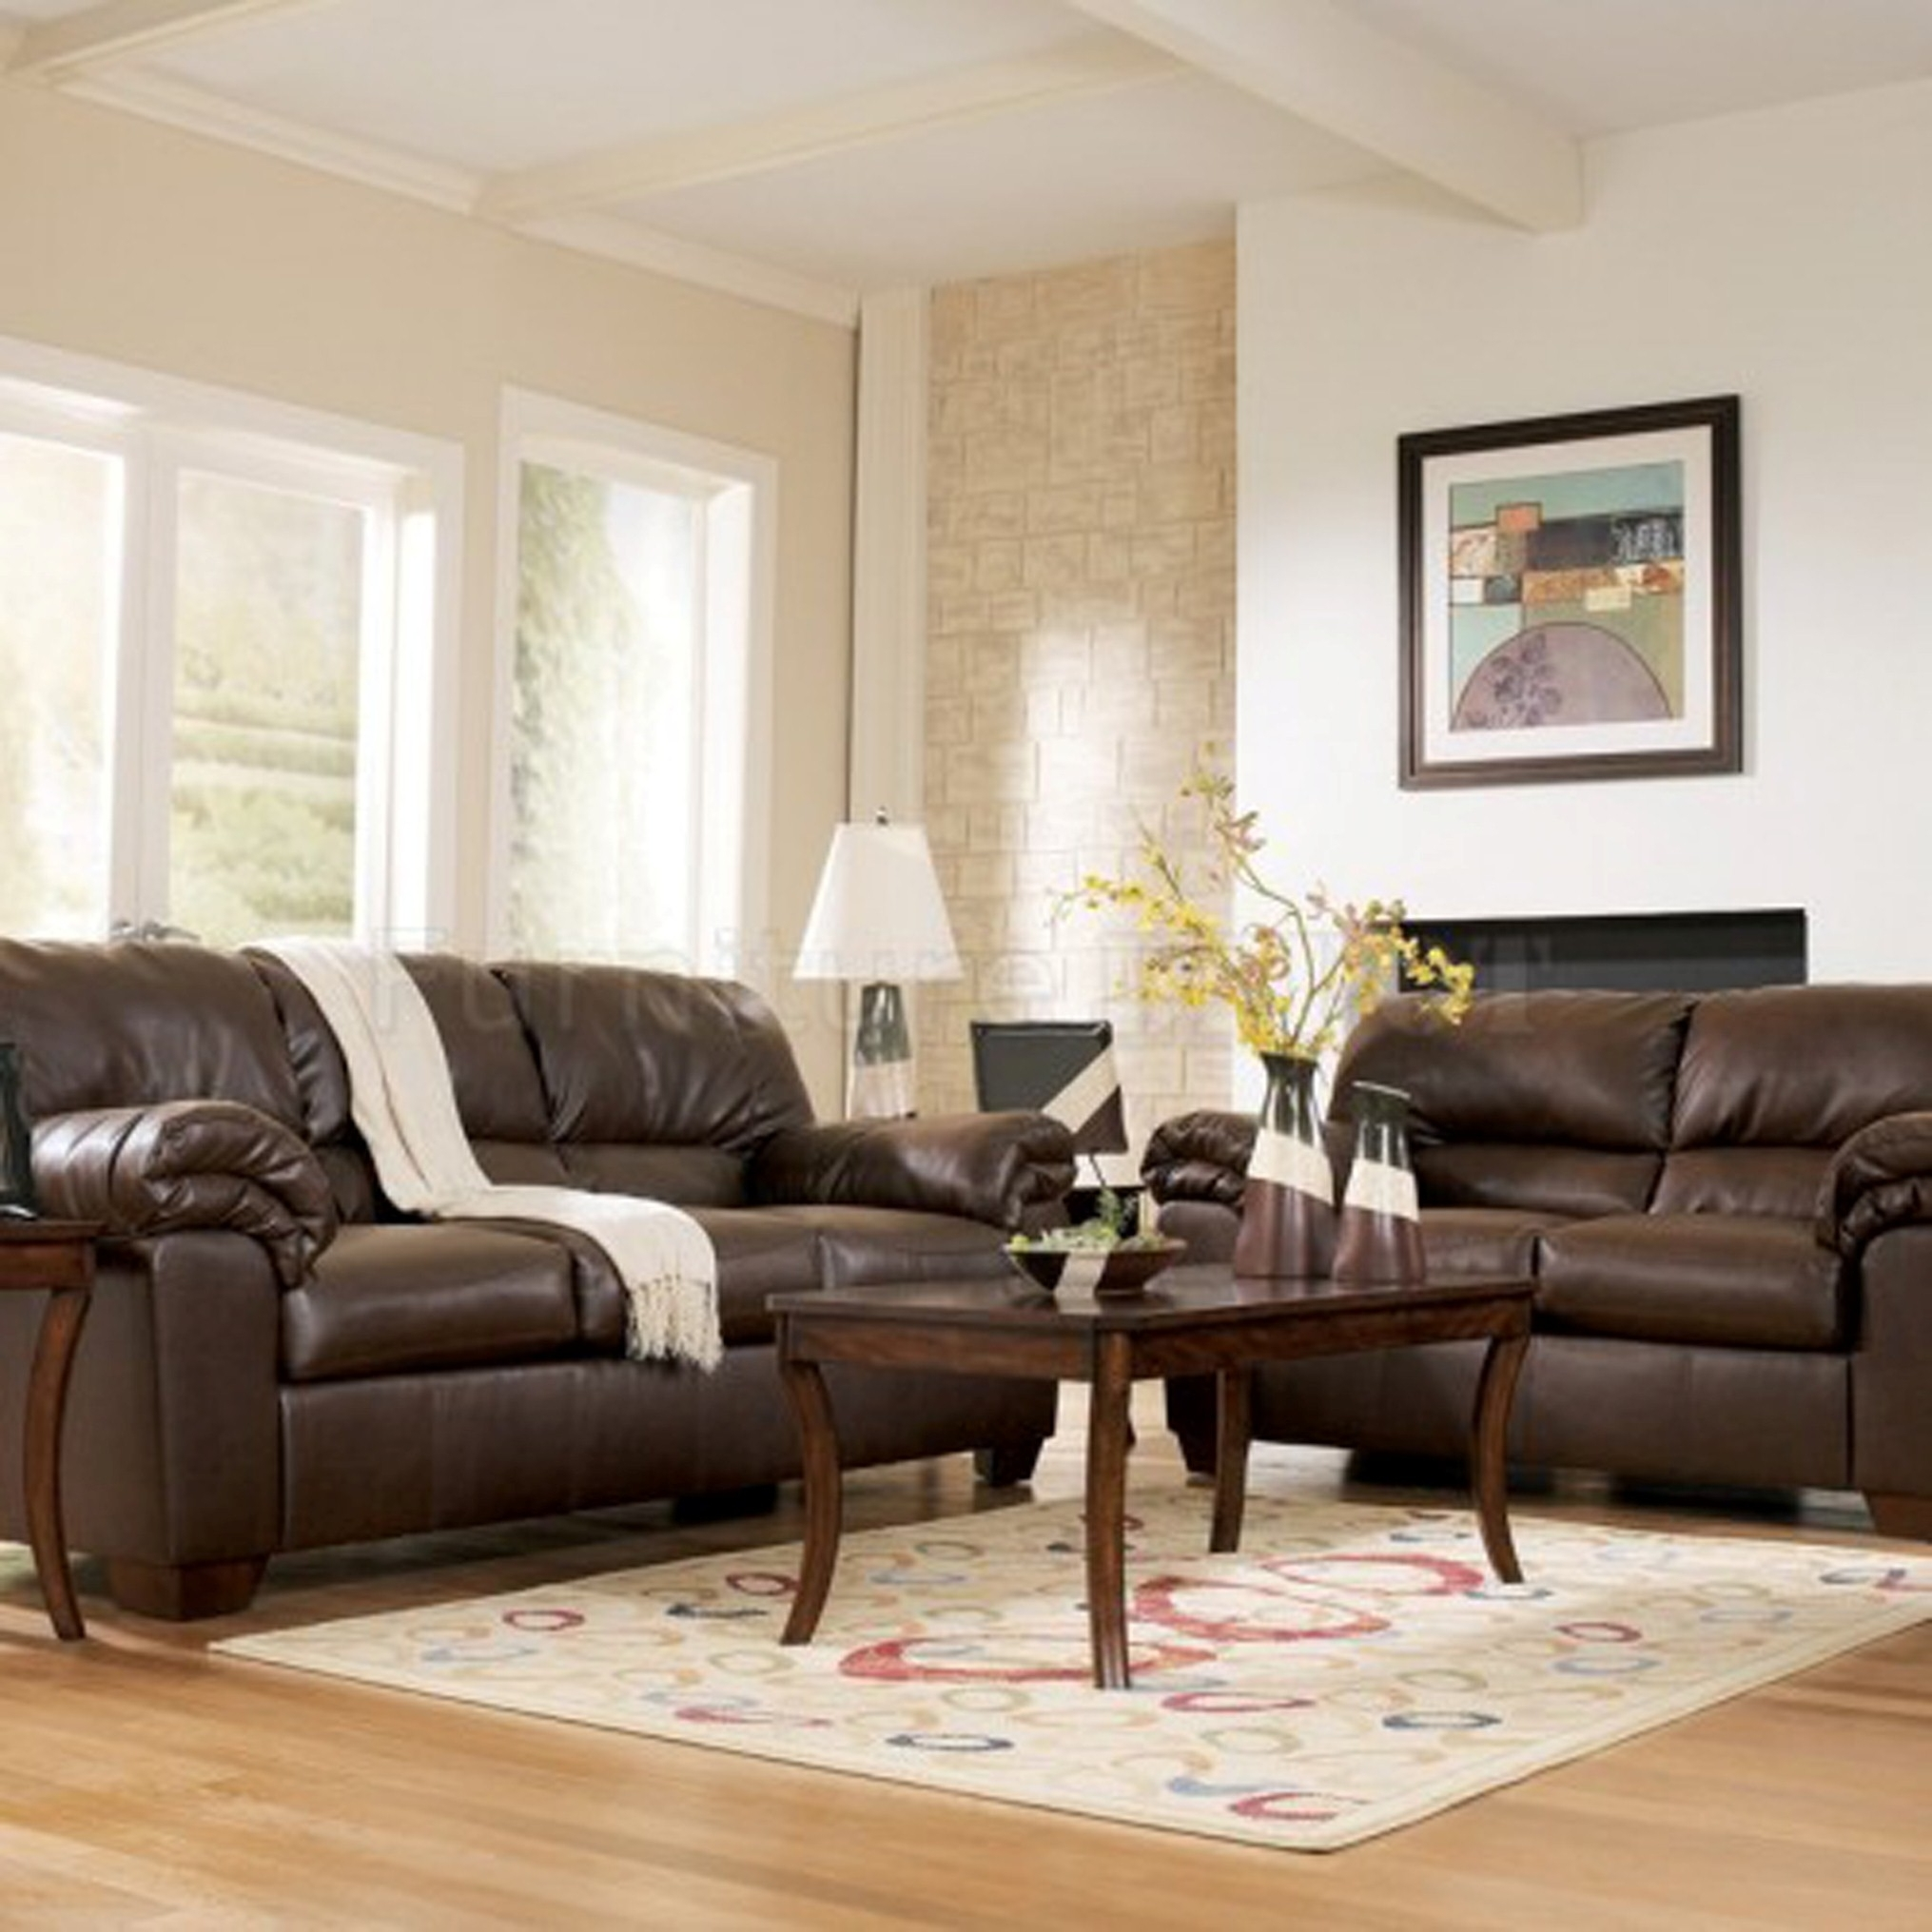 Modern Living Room Ideas With Fetching Brown Leather Sofa Plus Adorable Teak Wood Coffee Table Design And Wonderful Beige And White Living Room Theme Nuance (Image 19 of 30)